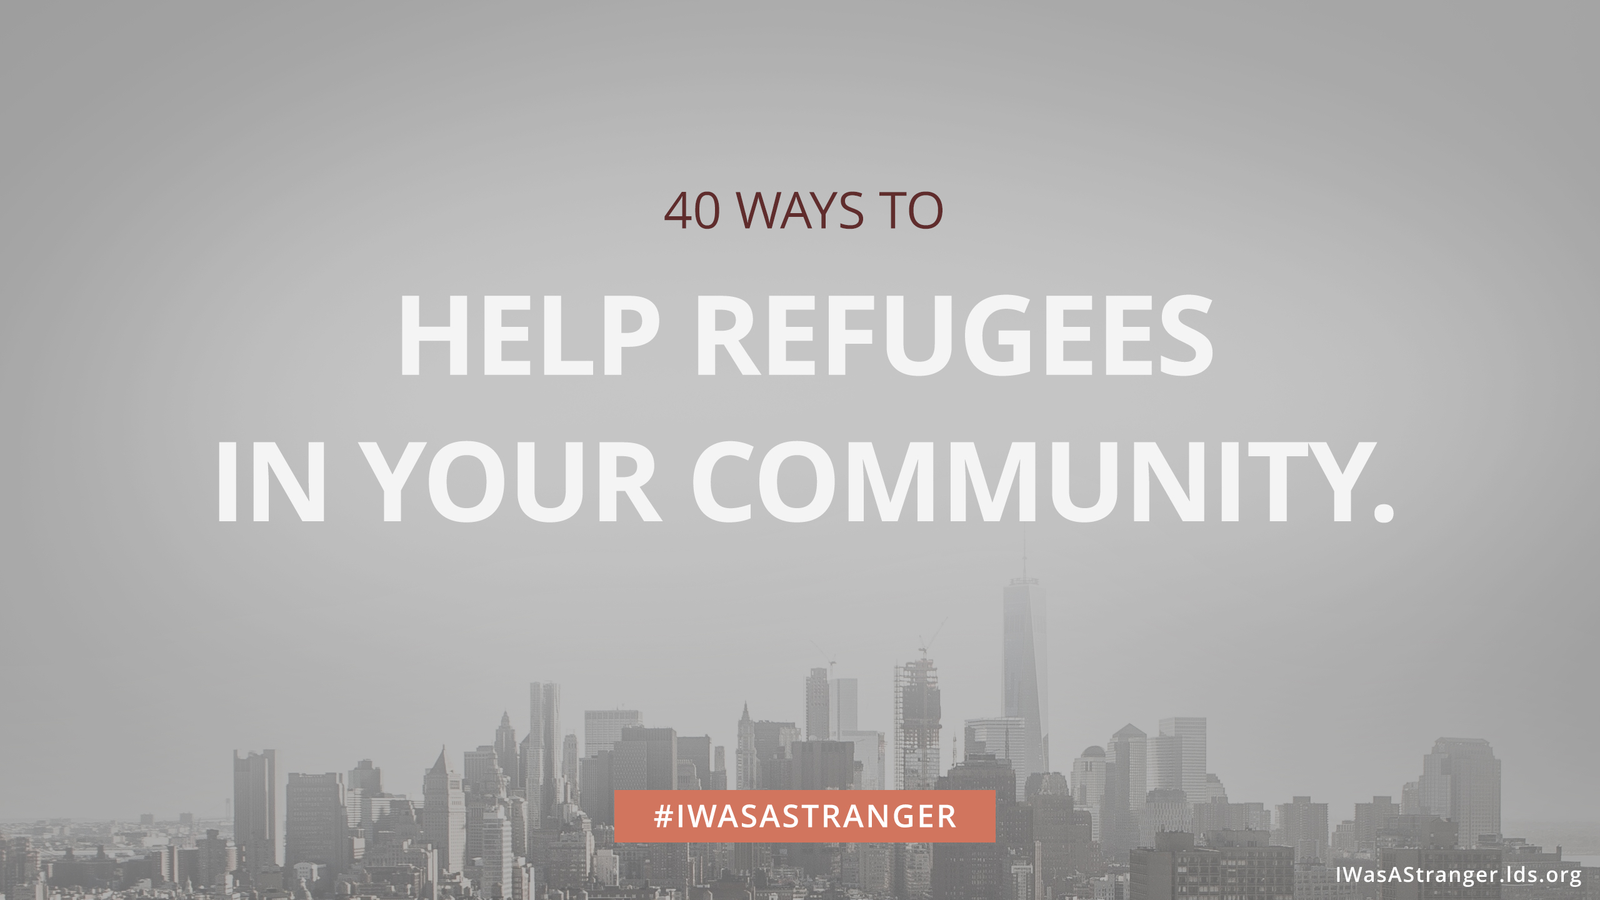 40 Ways to Help Refugees in Your Community.